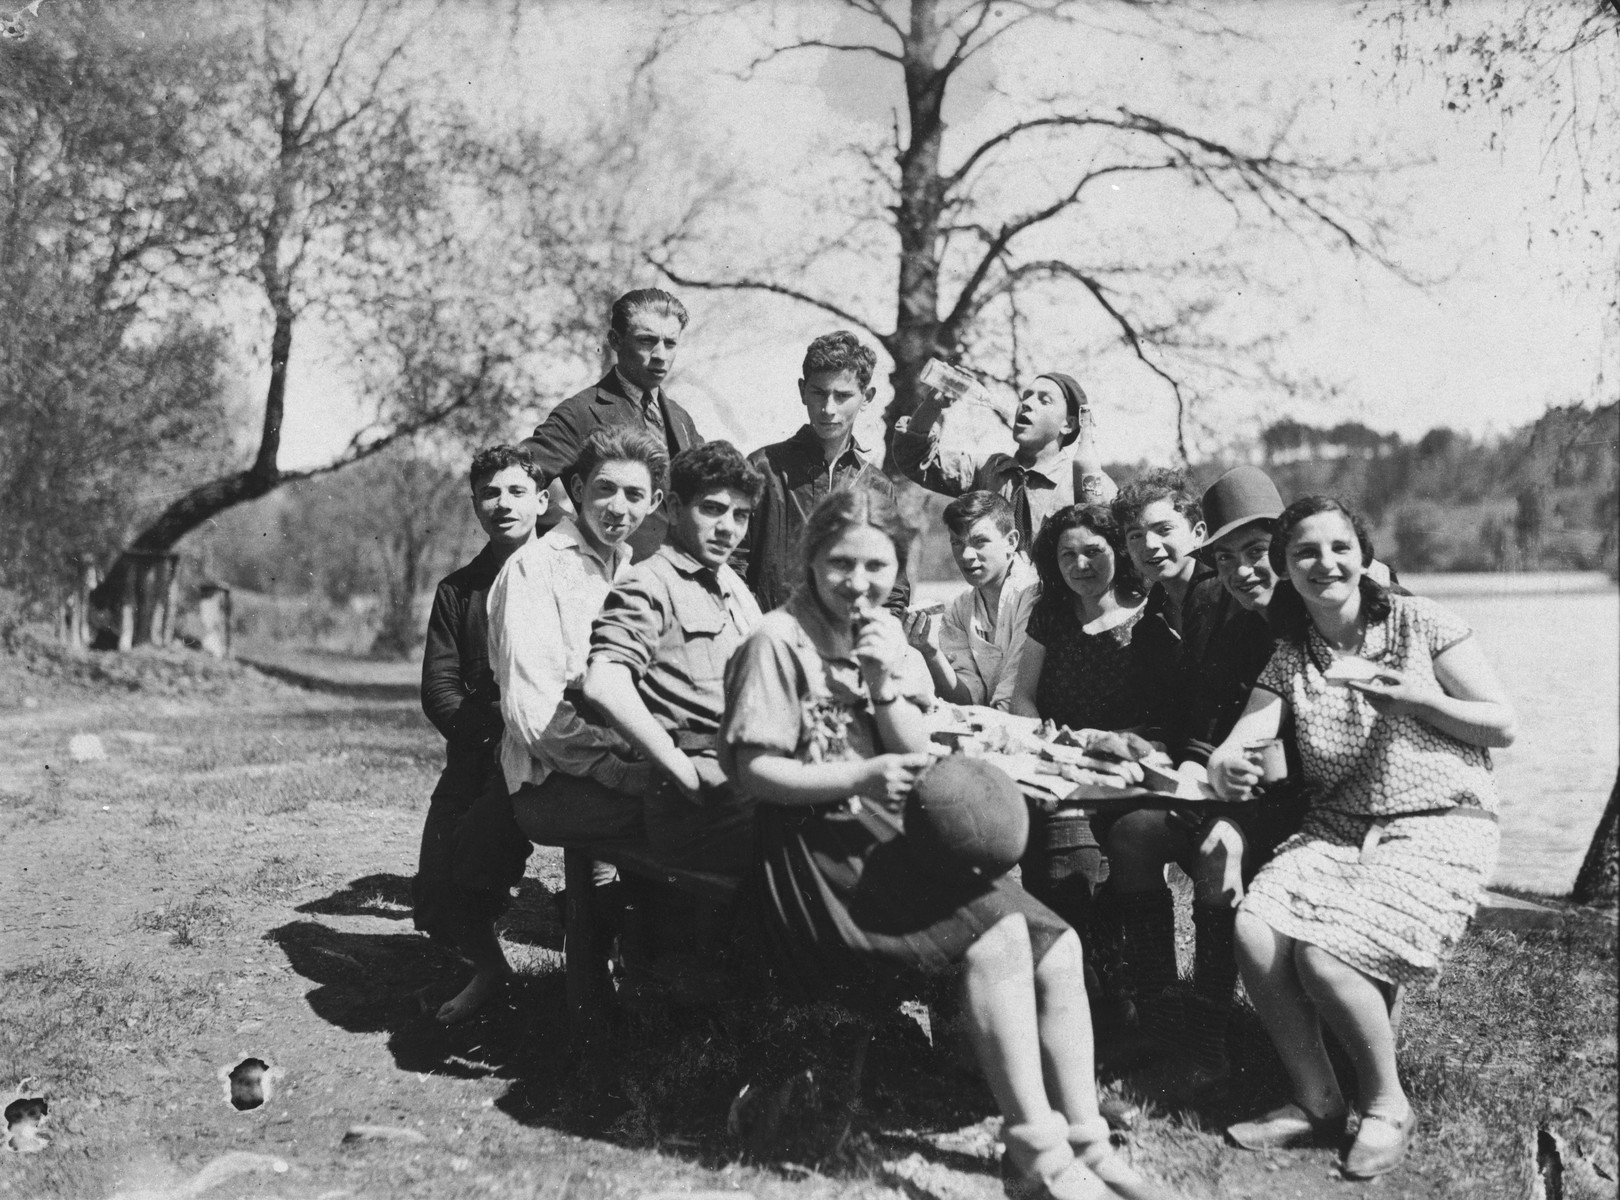 Members of the Morgenstern Jewish sports organization pose around a picnic table while on an outing to the lake.  Among those pictured are Shimke Isaac, Reike Epstein and Avremke.